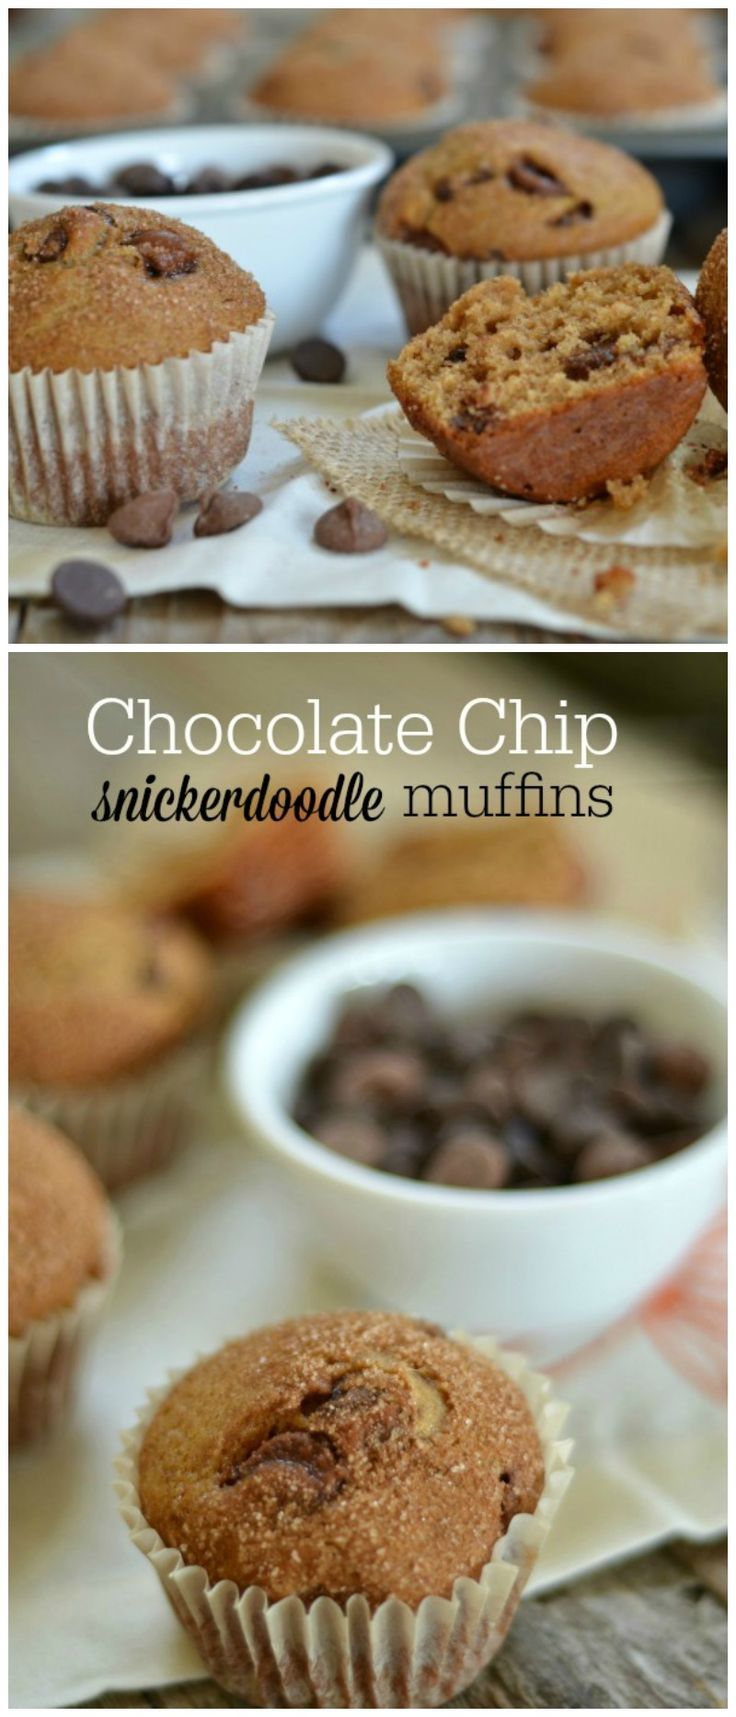 Chocolate Chip Snickerdoodle Muffins are so simple and SO delicious. Make a big batch and freeze them or school lunches or an after school snack! www.mountainmamacooks.com